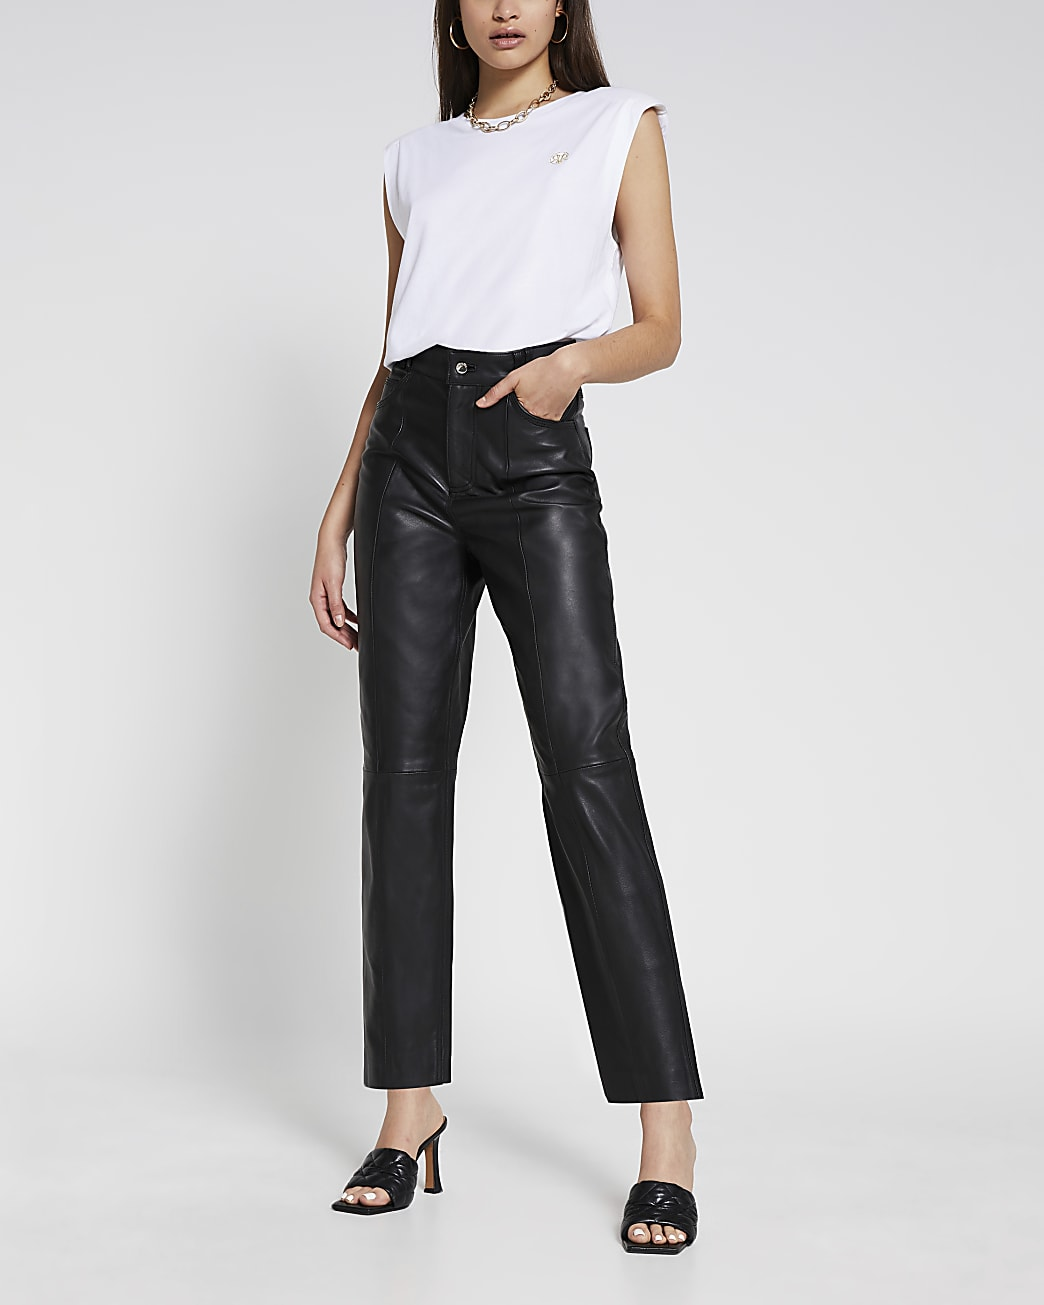 Black leather straight trousers